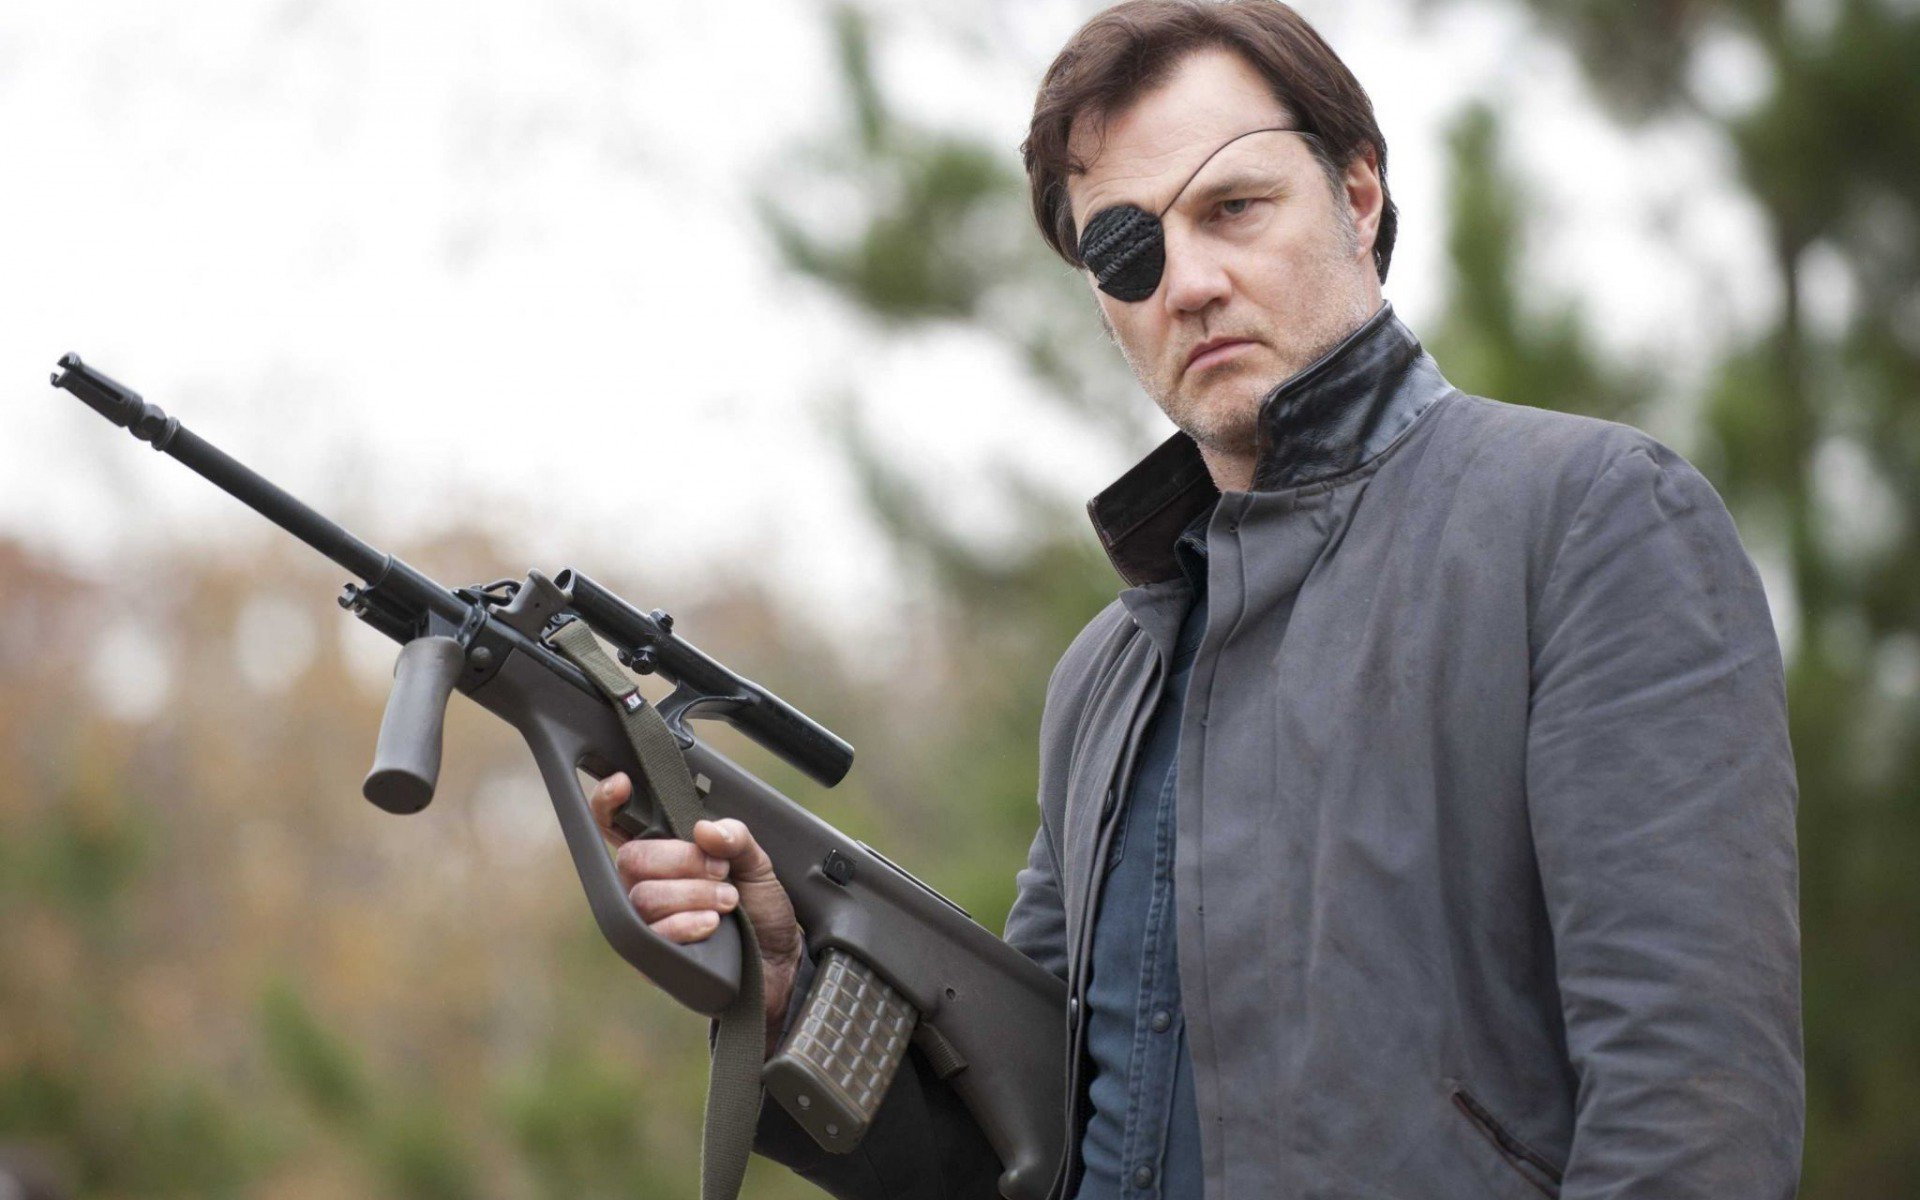 губернатор, David Morrissey, the walking dead, Дэвид Моррисси, ходячие мертвецы